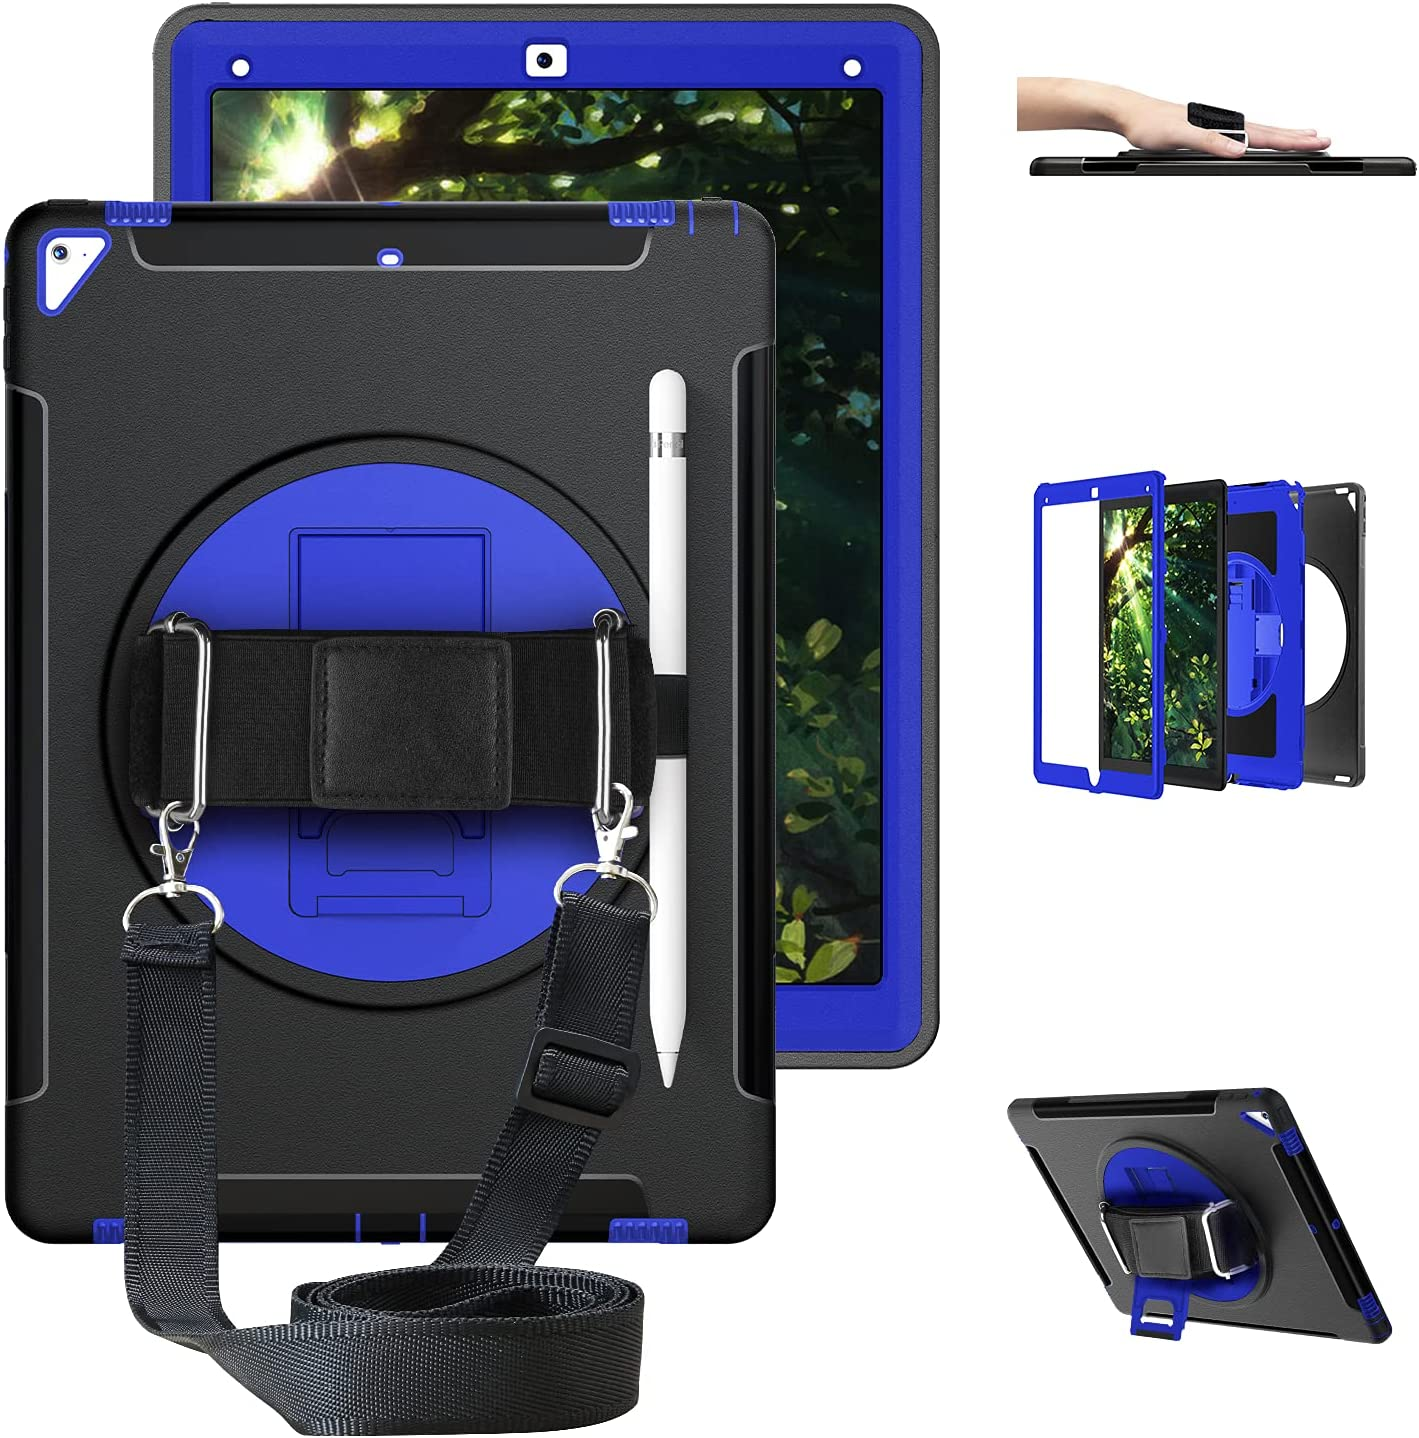 GEEKSDOM iPad Pro 12.9 Case 2nd Generation 2017 & 2015 1st Generation, Heavy Duty Rugged Shockproof Protective Soft TPU Back Cover w/360 Rotating Stand/Handle Hand/Shoulder Strap/Pencil Holder Blue